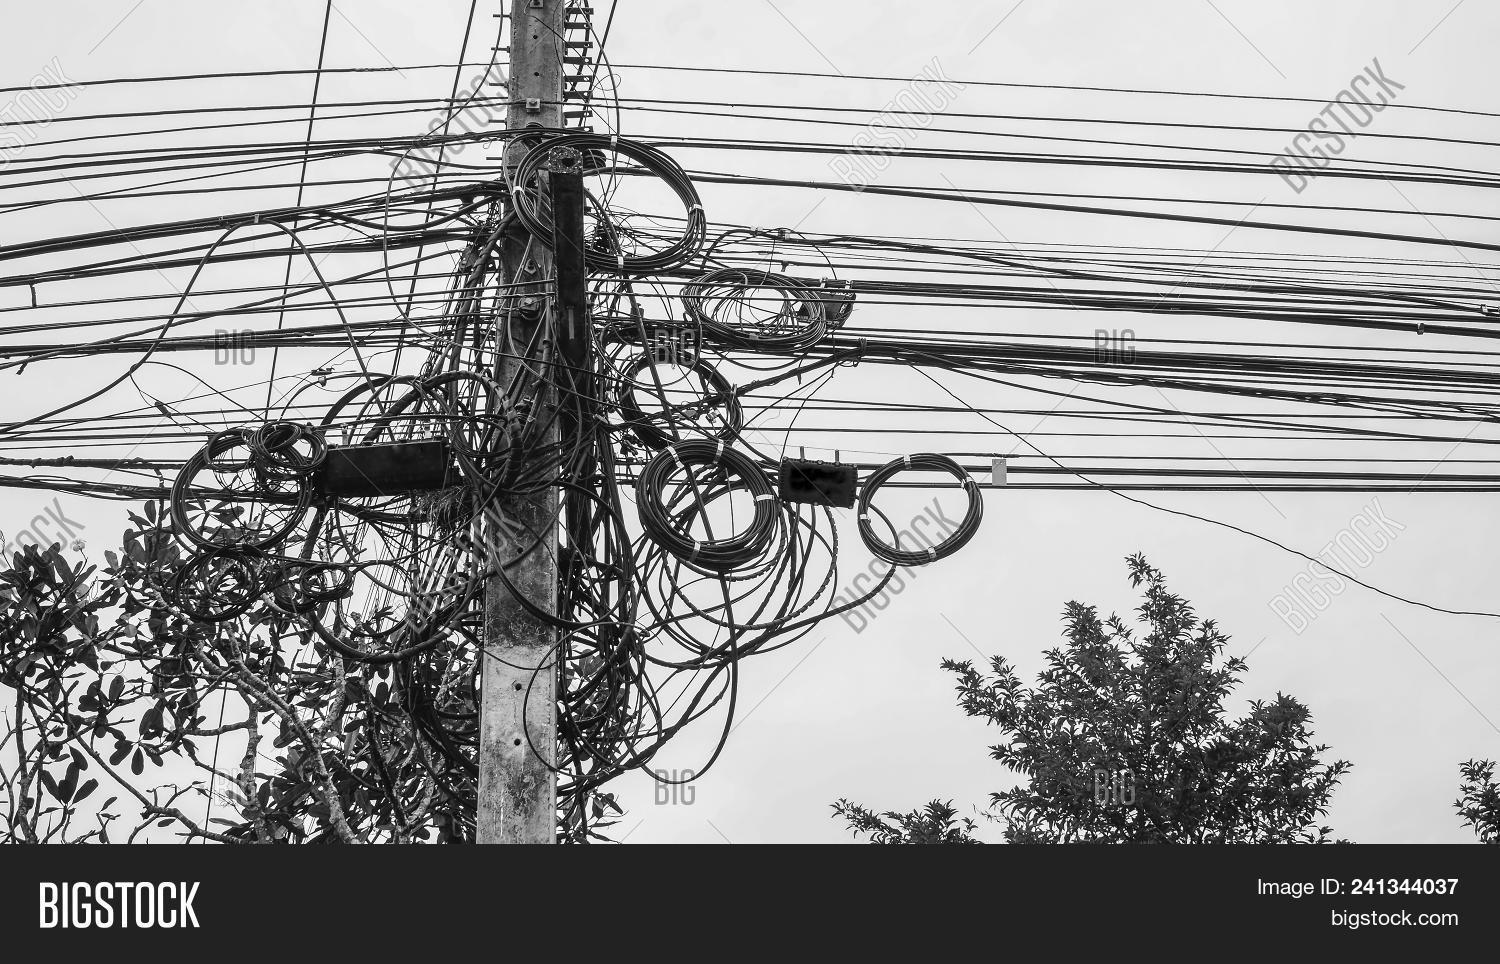 hight resolution of potential danger from a mess of wires at thailand electric pole with electric wire tangled very messy electricity or telephone pole